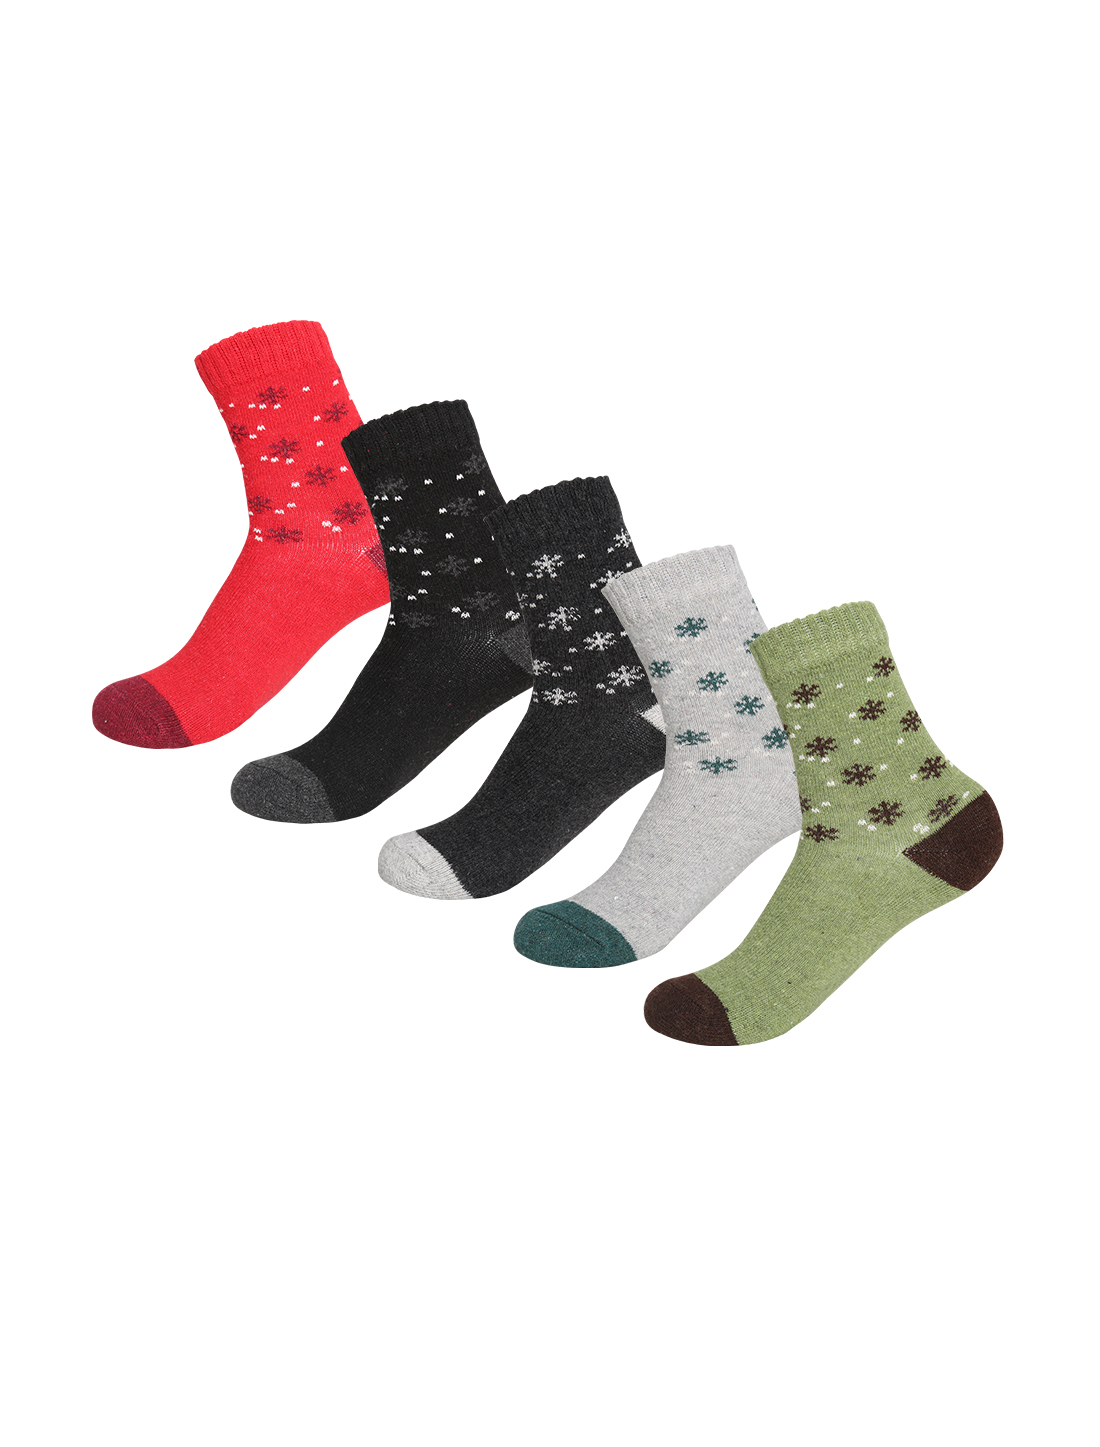 Women 5 Pack Small Snowflake Pattern Crew Socks 7-9 Assorted-SnowflakeS